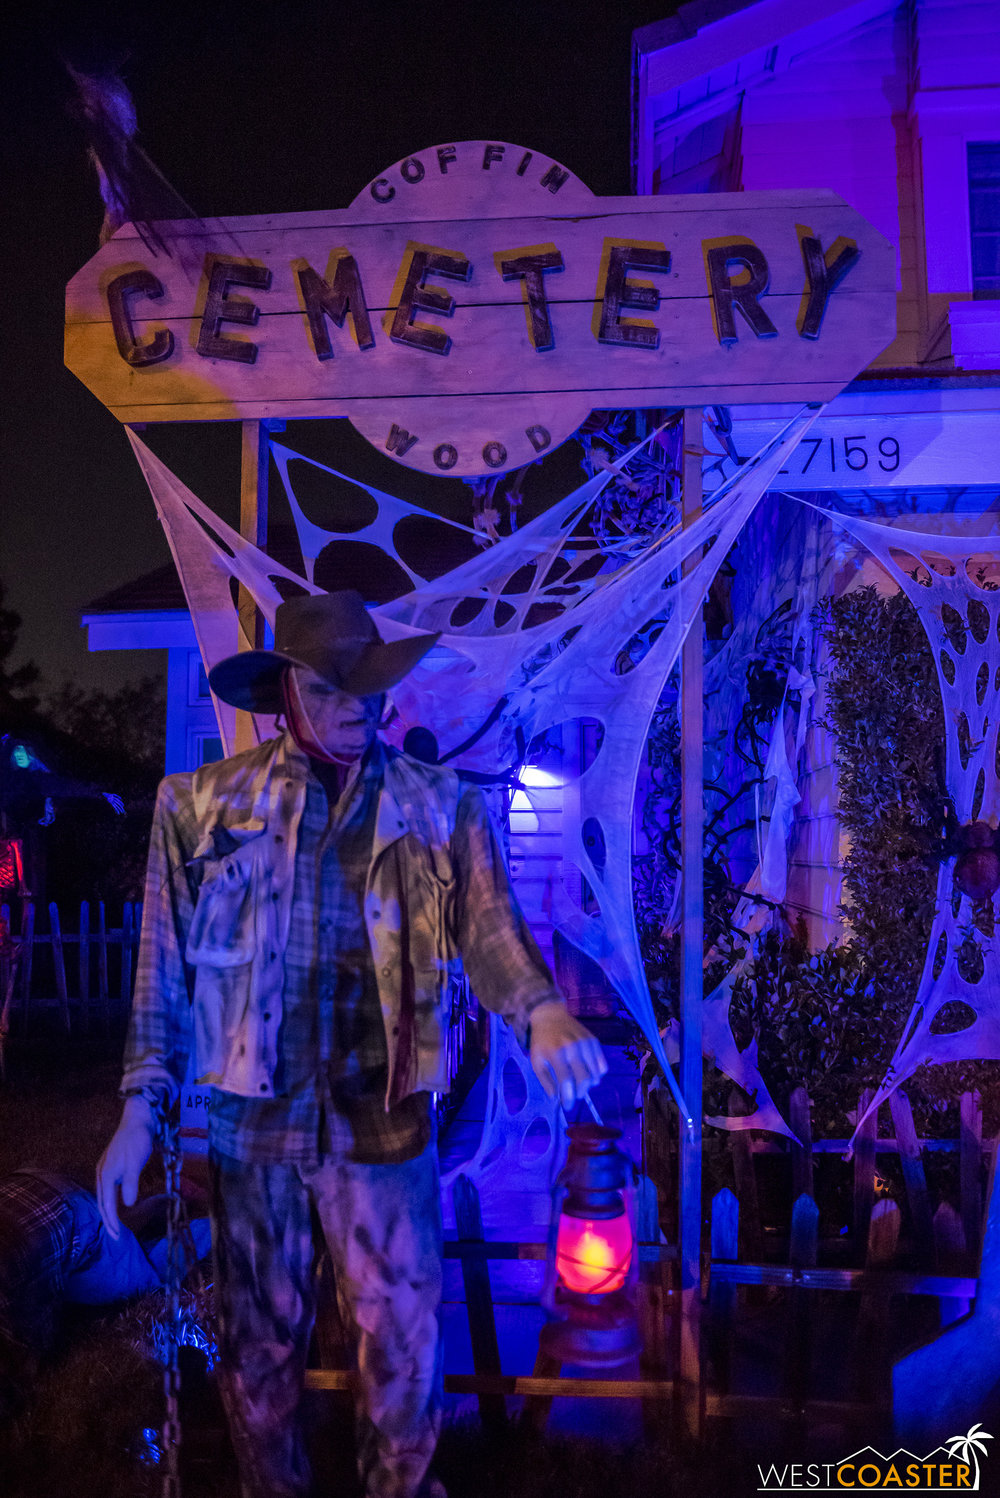 Coffinwood Cemetery is a great-looking haunt well worth a quick stop on a tour of other Santa Clarita haunts!